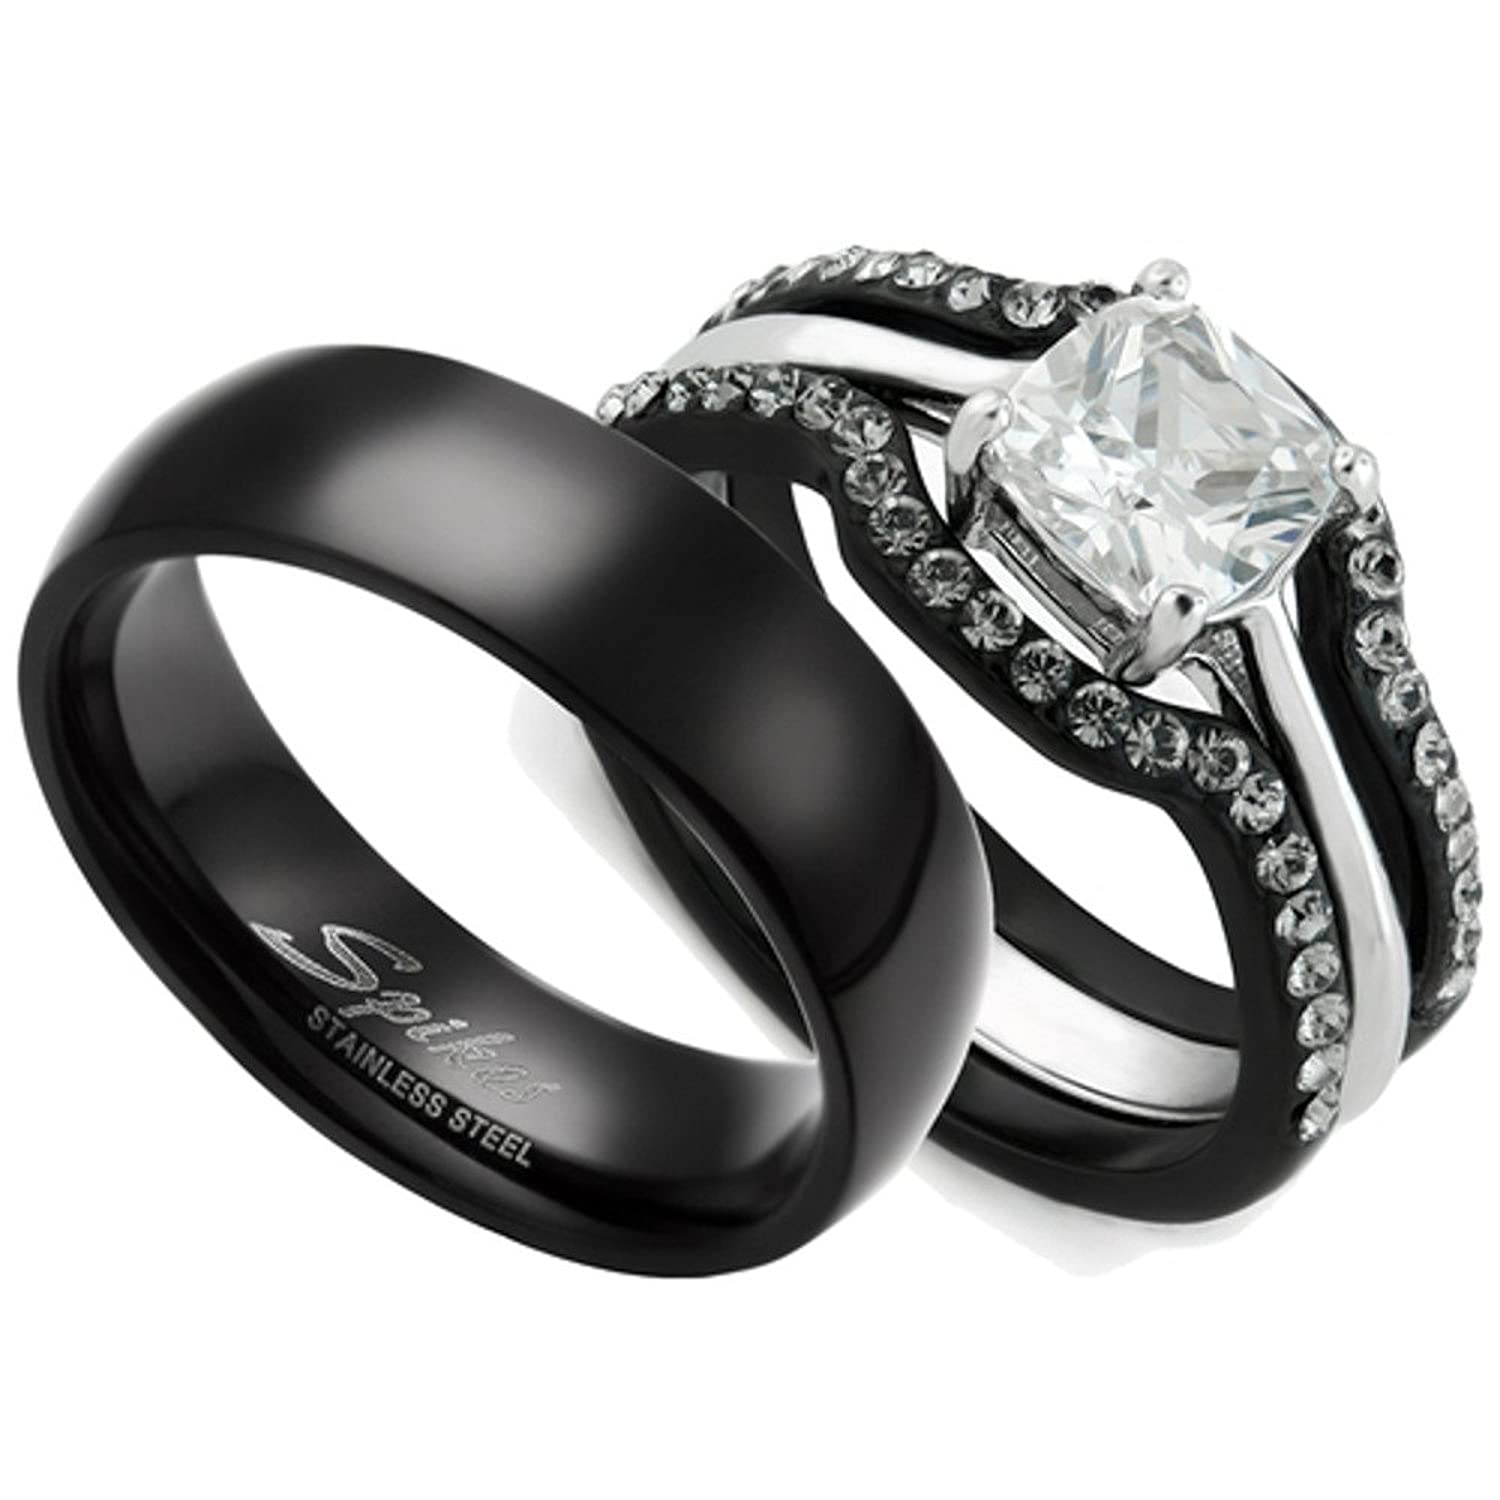 wedding ring rings cut engagement set diamond princess deer gorgeous black